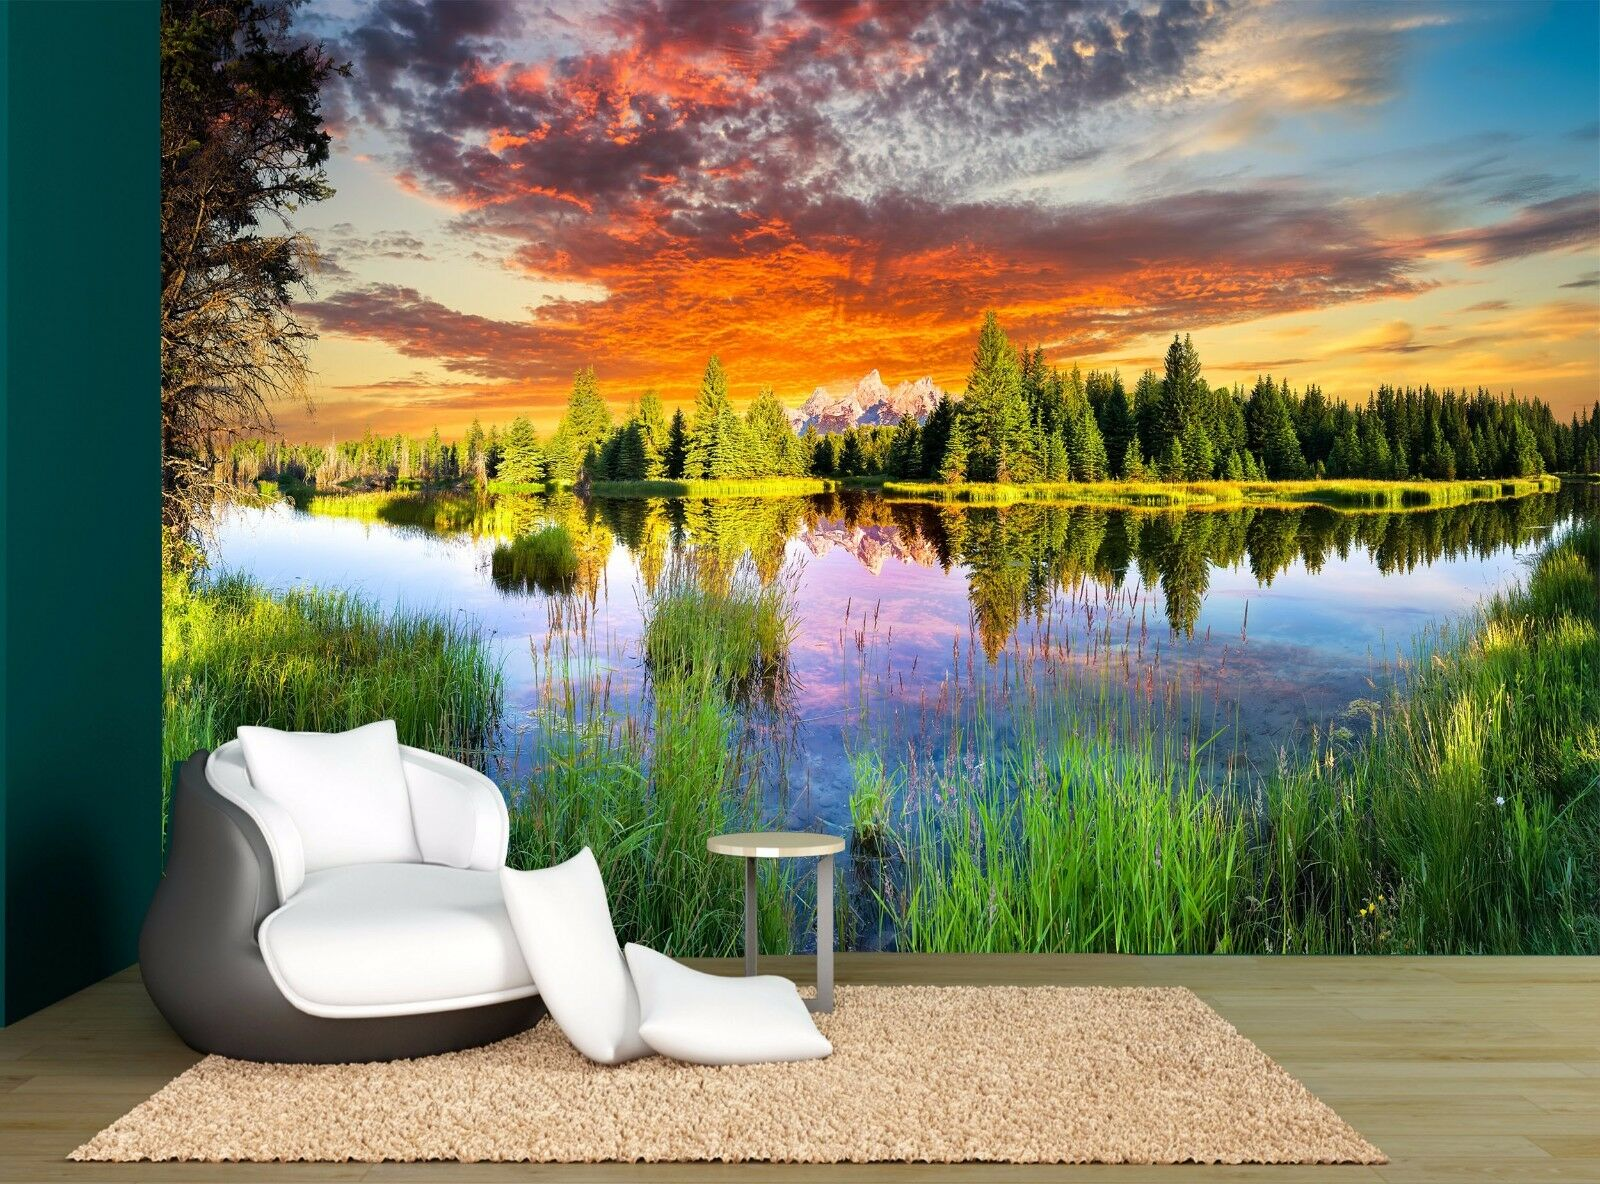 Sunset Clouds Lake Forest River Wall Mural Photo Wallpaper GIANT WALL DECOR